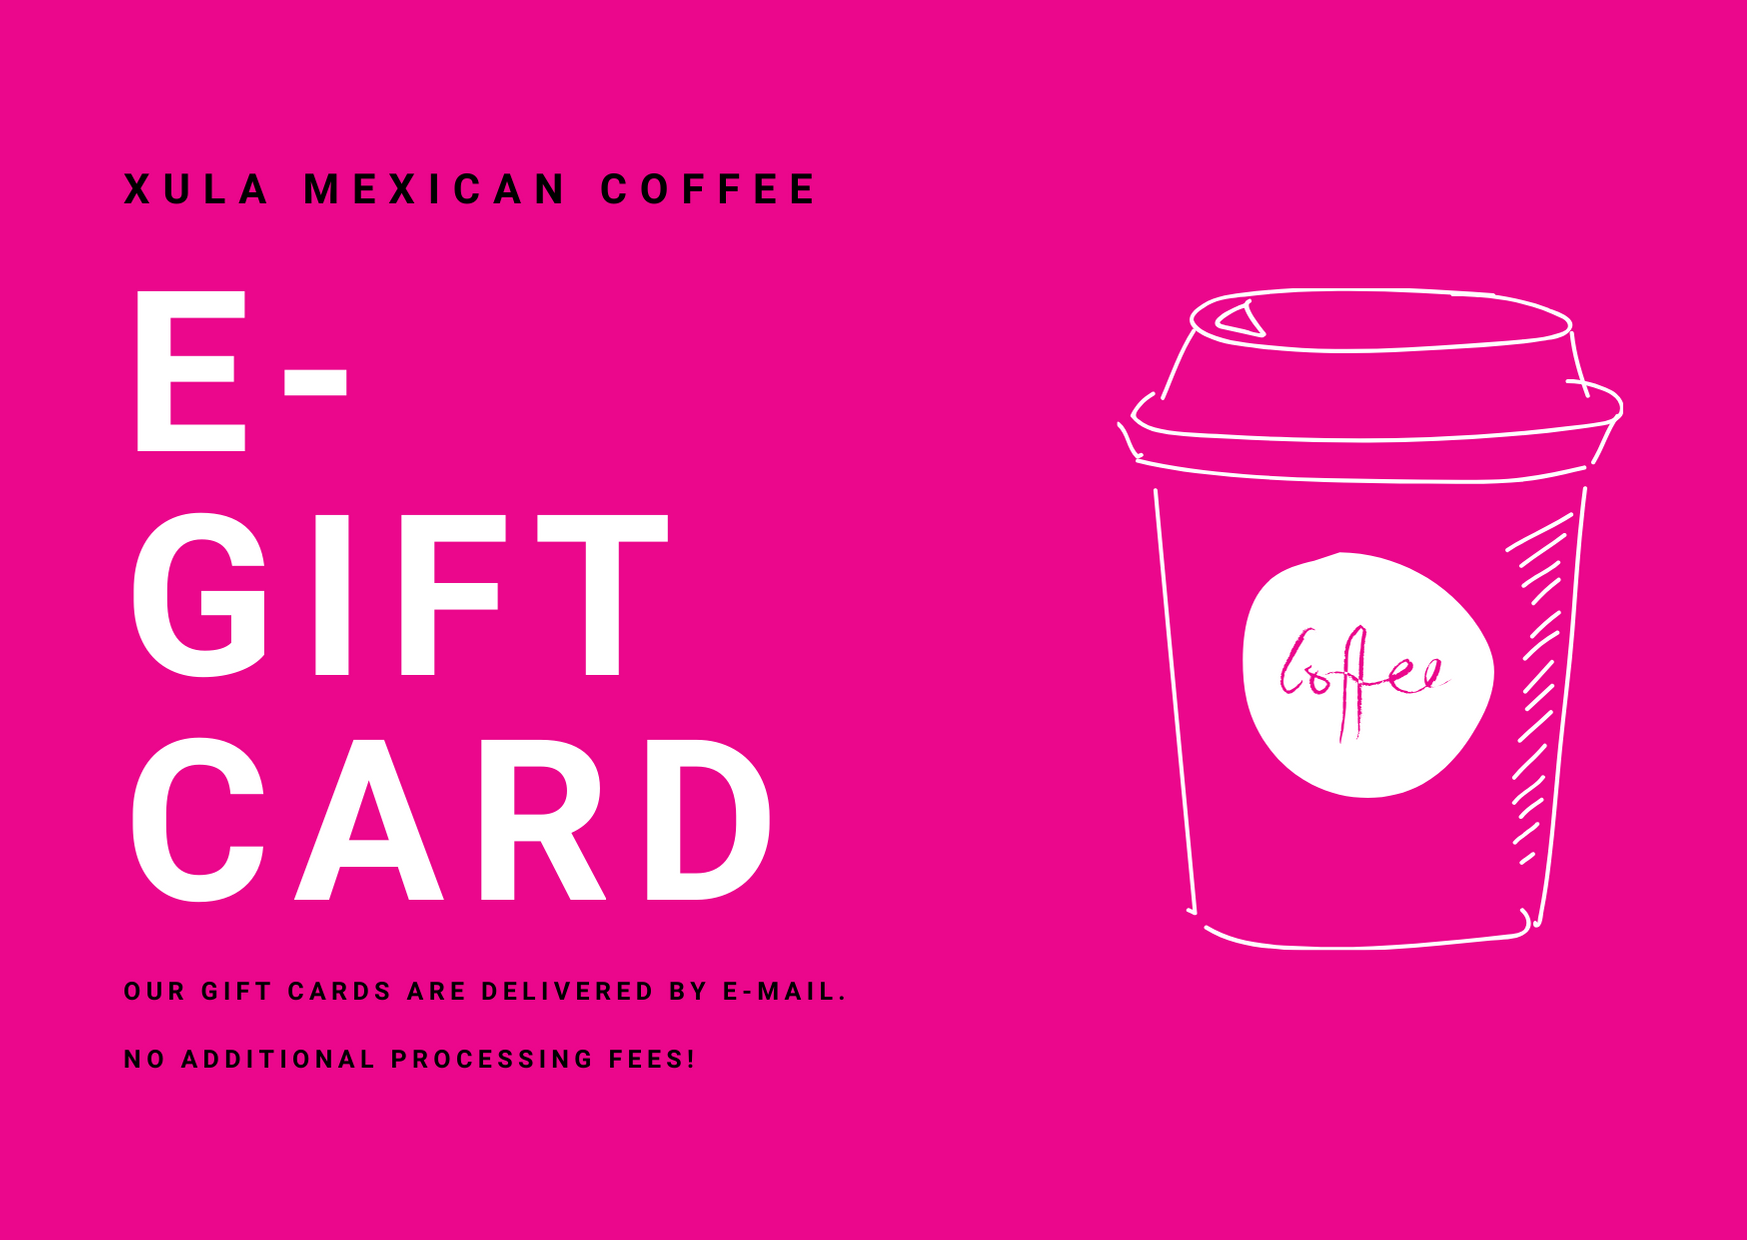 Xula Mexican Coffee E-Gift Card - Xula Mexican Coffee